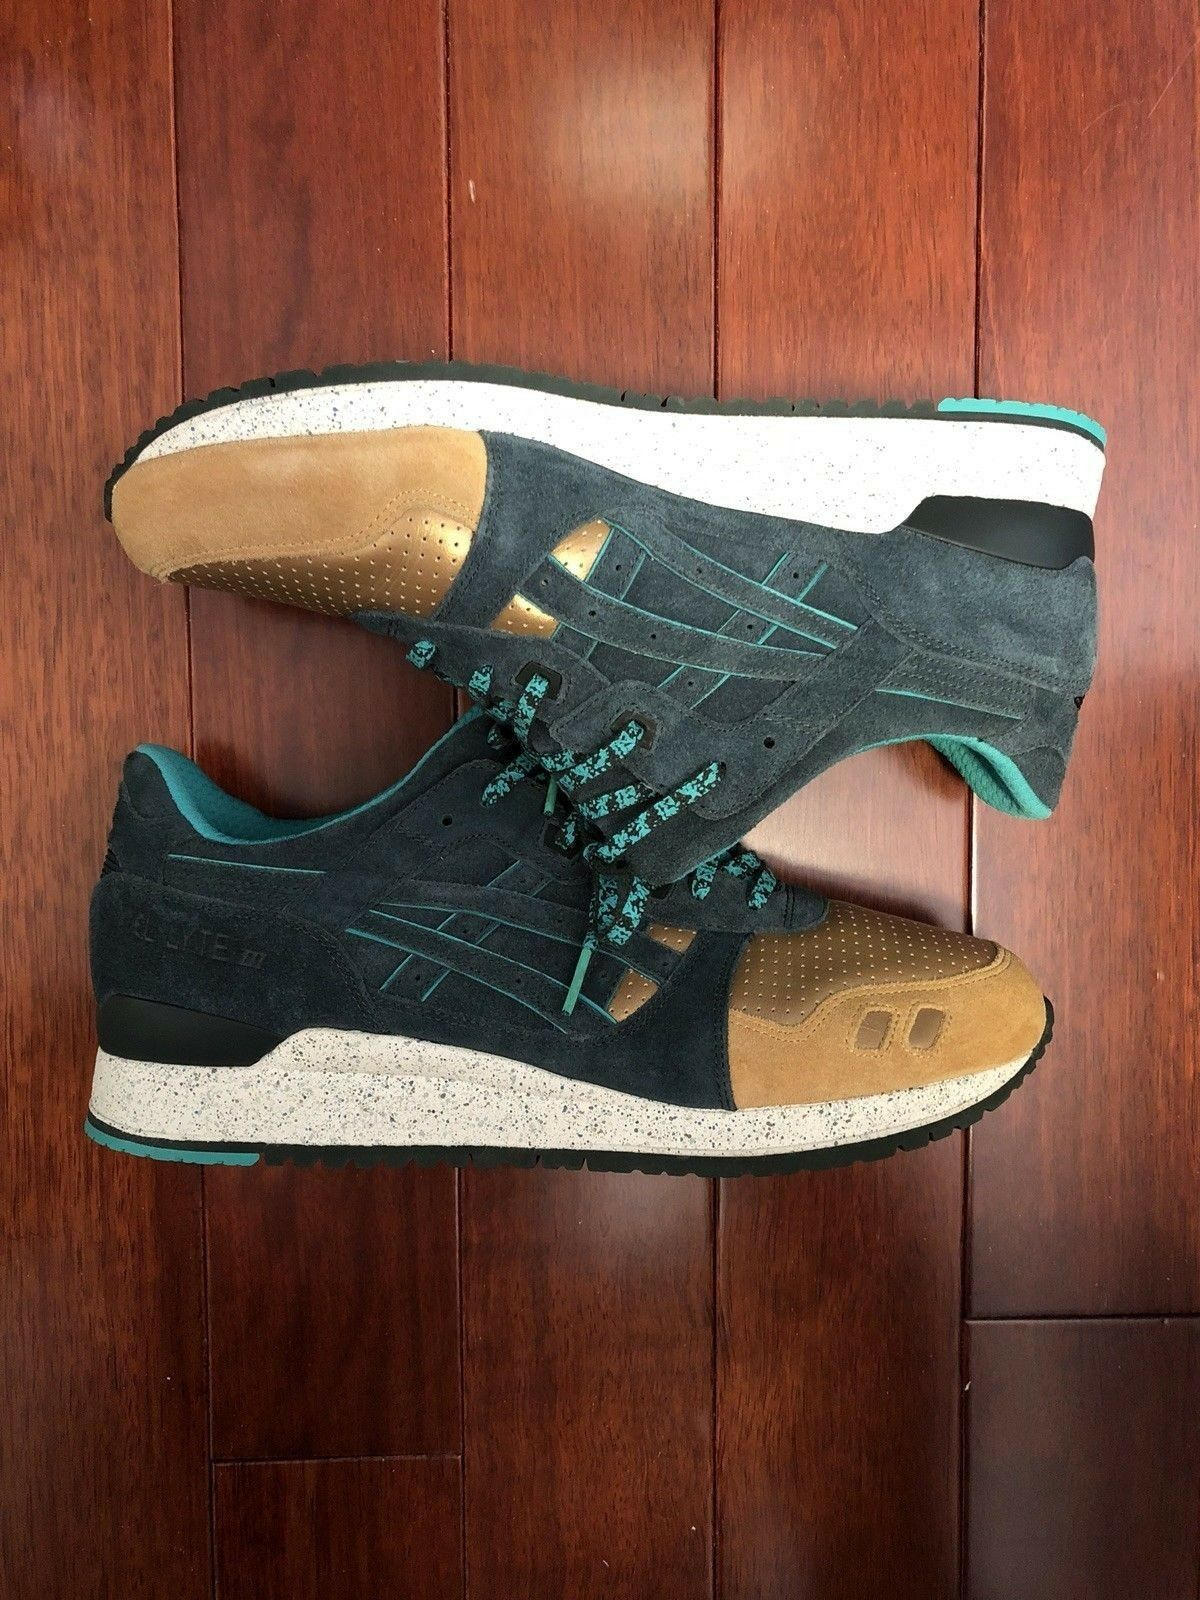 ASICS Gel-Lyte III Concepts  Three Lies  Size 12 - 9.5 10 Condition